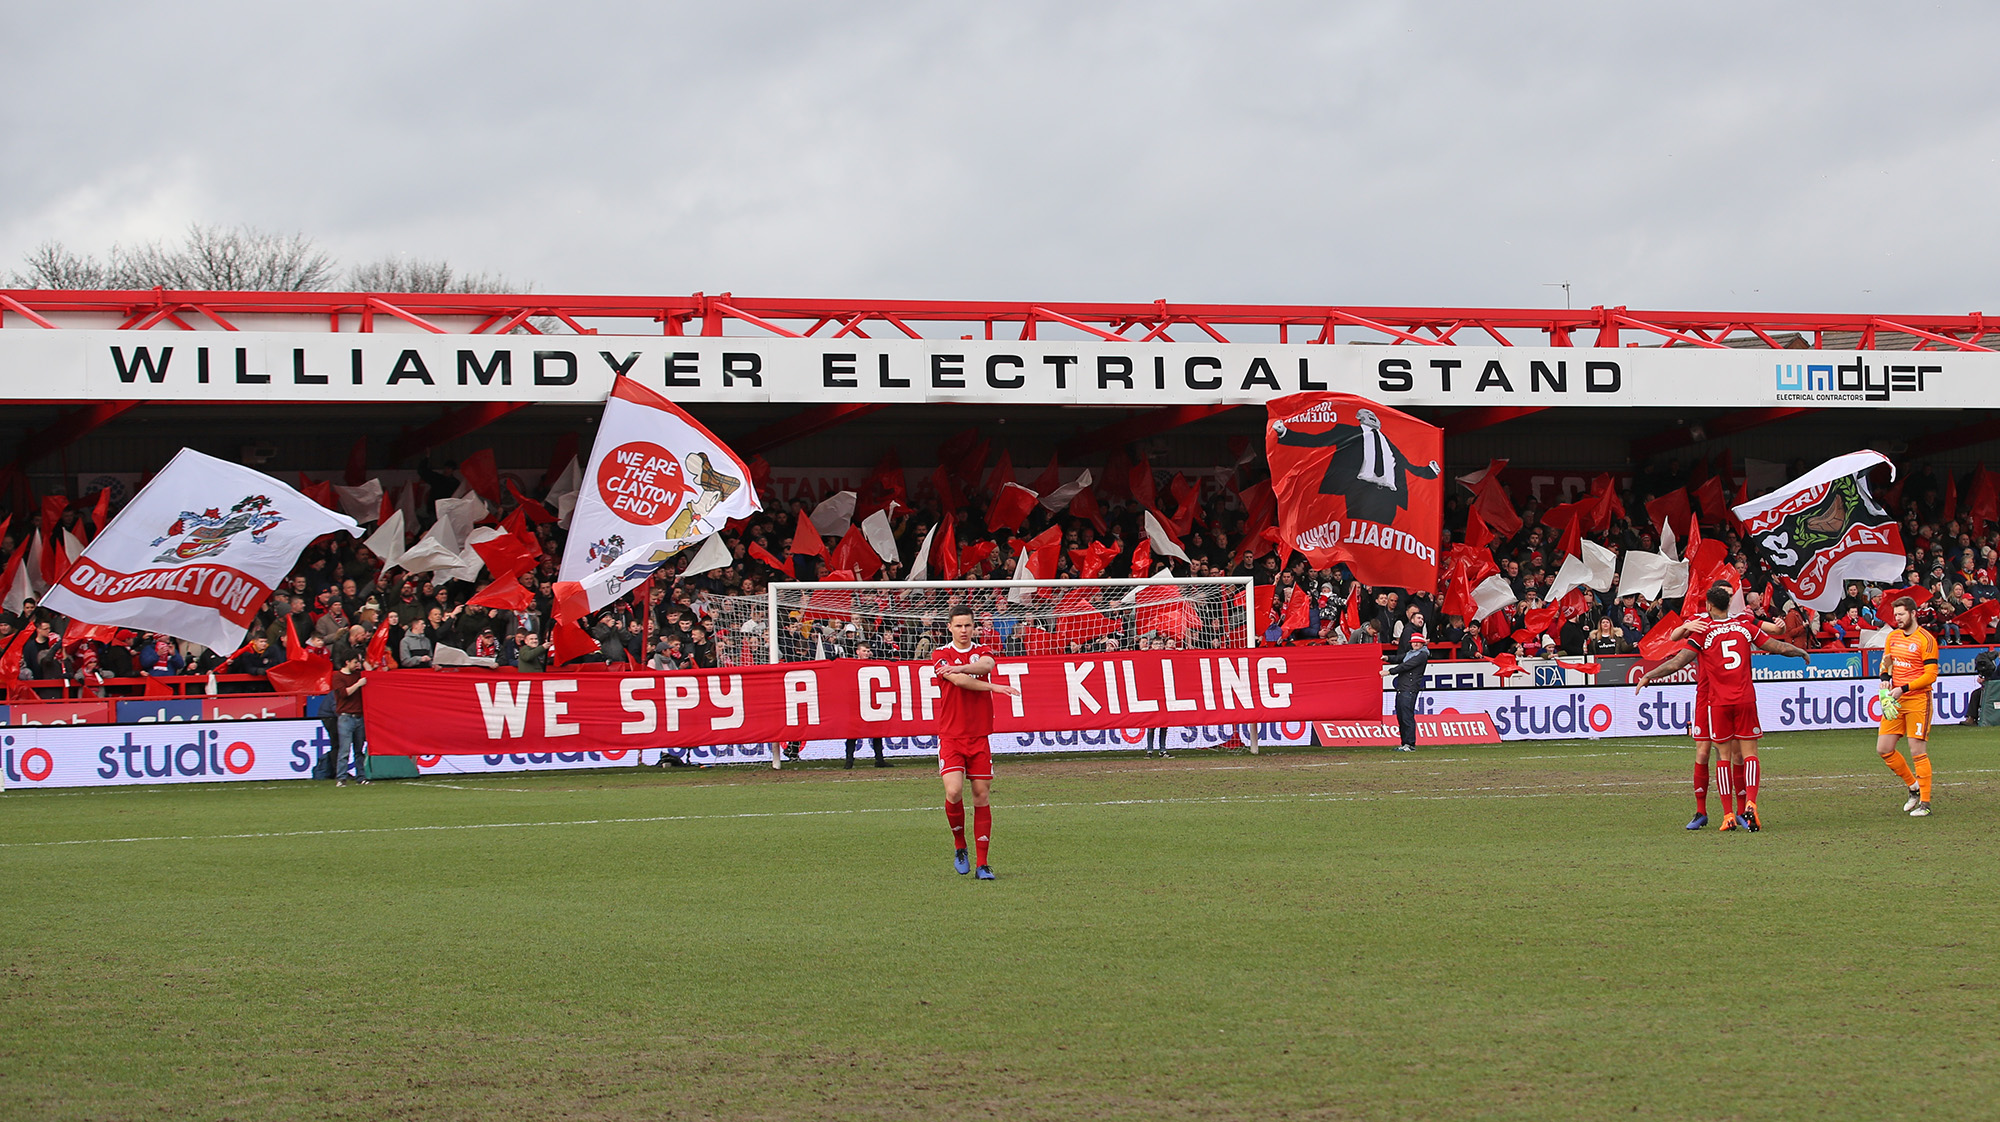 The Clayton End at the Wham Stadium